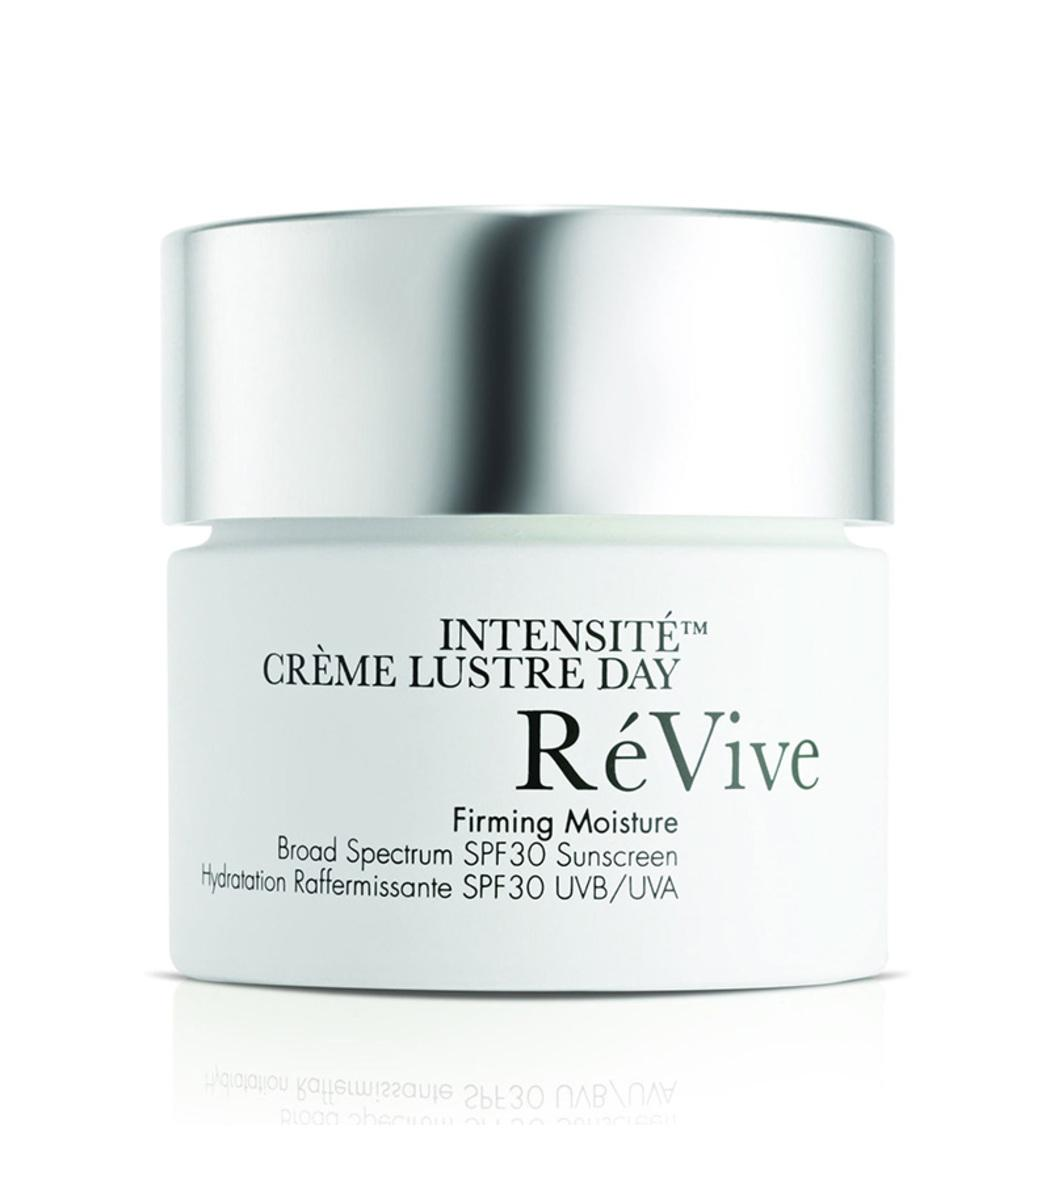 Revive Intensite Creme Lustre Day Firming Cream Spf 30 In N/A